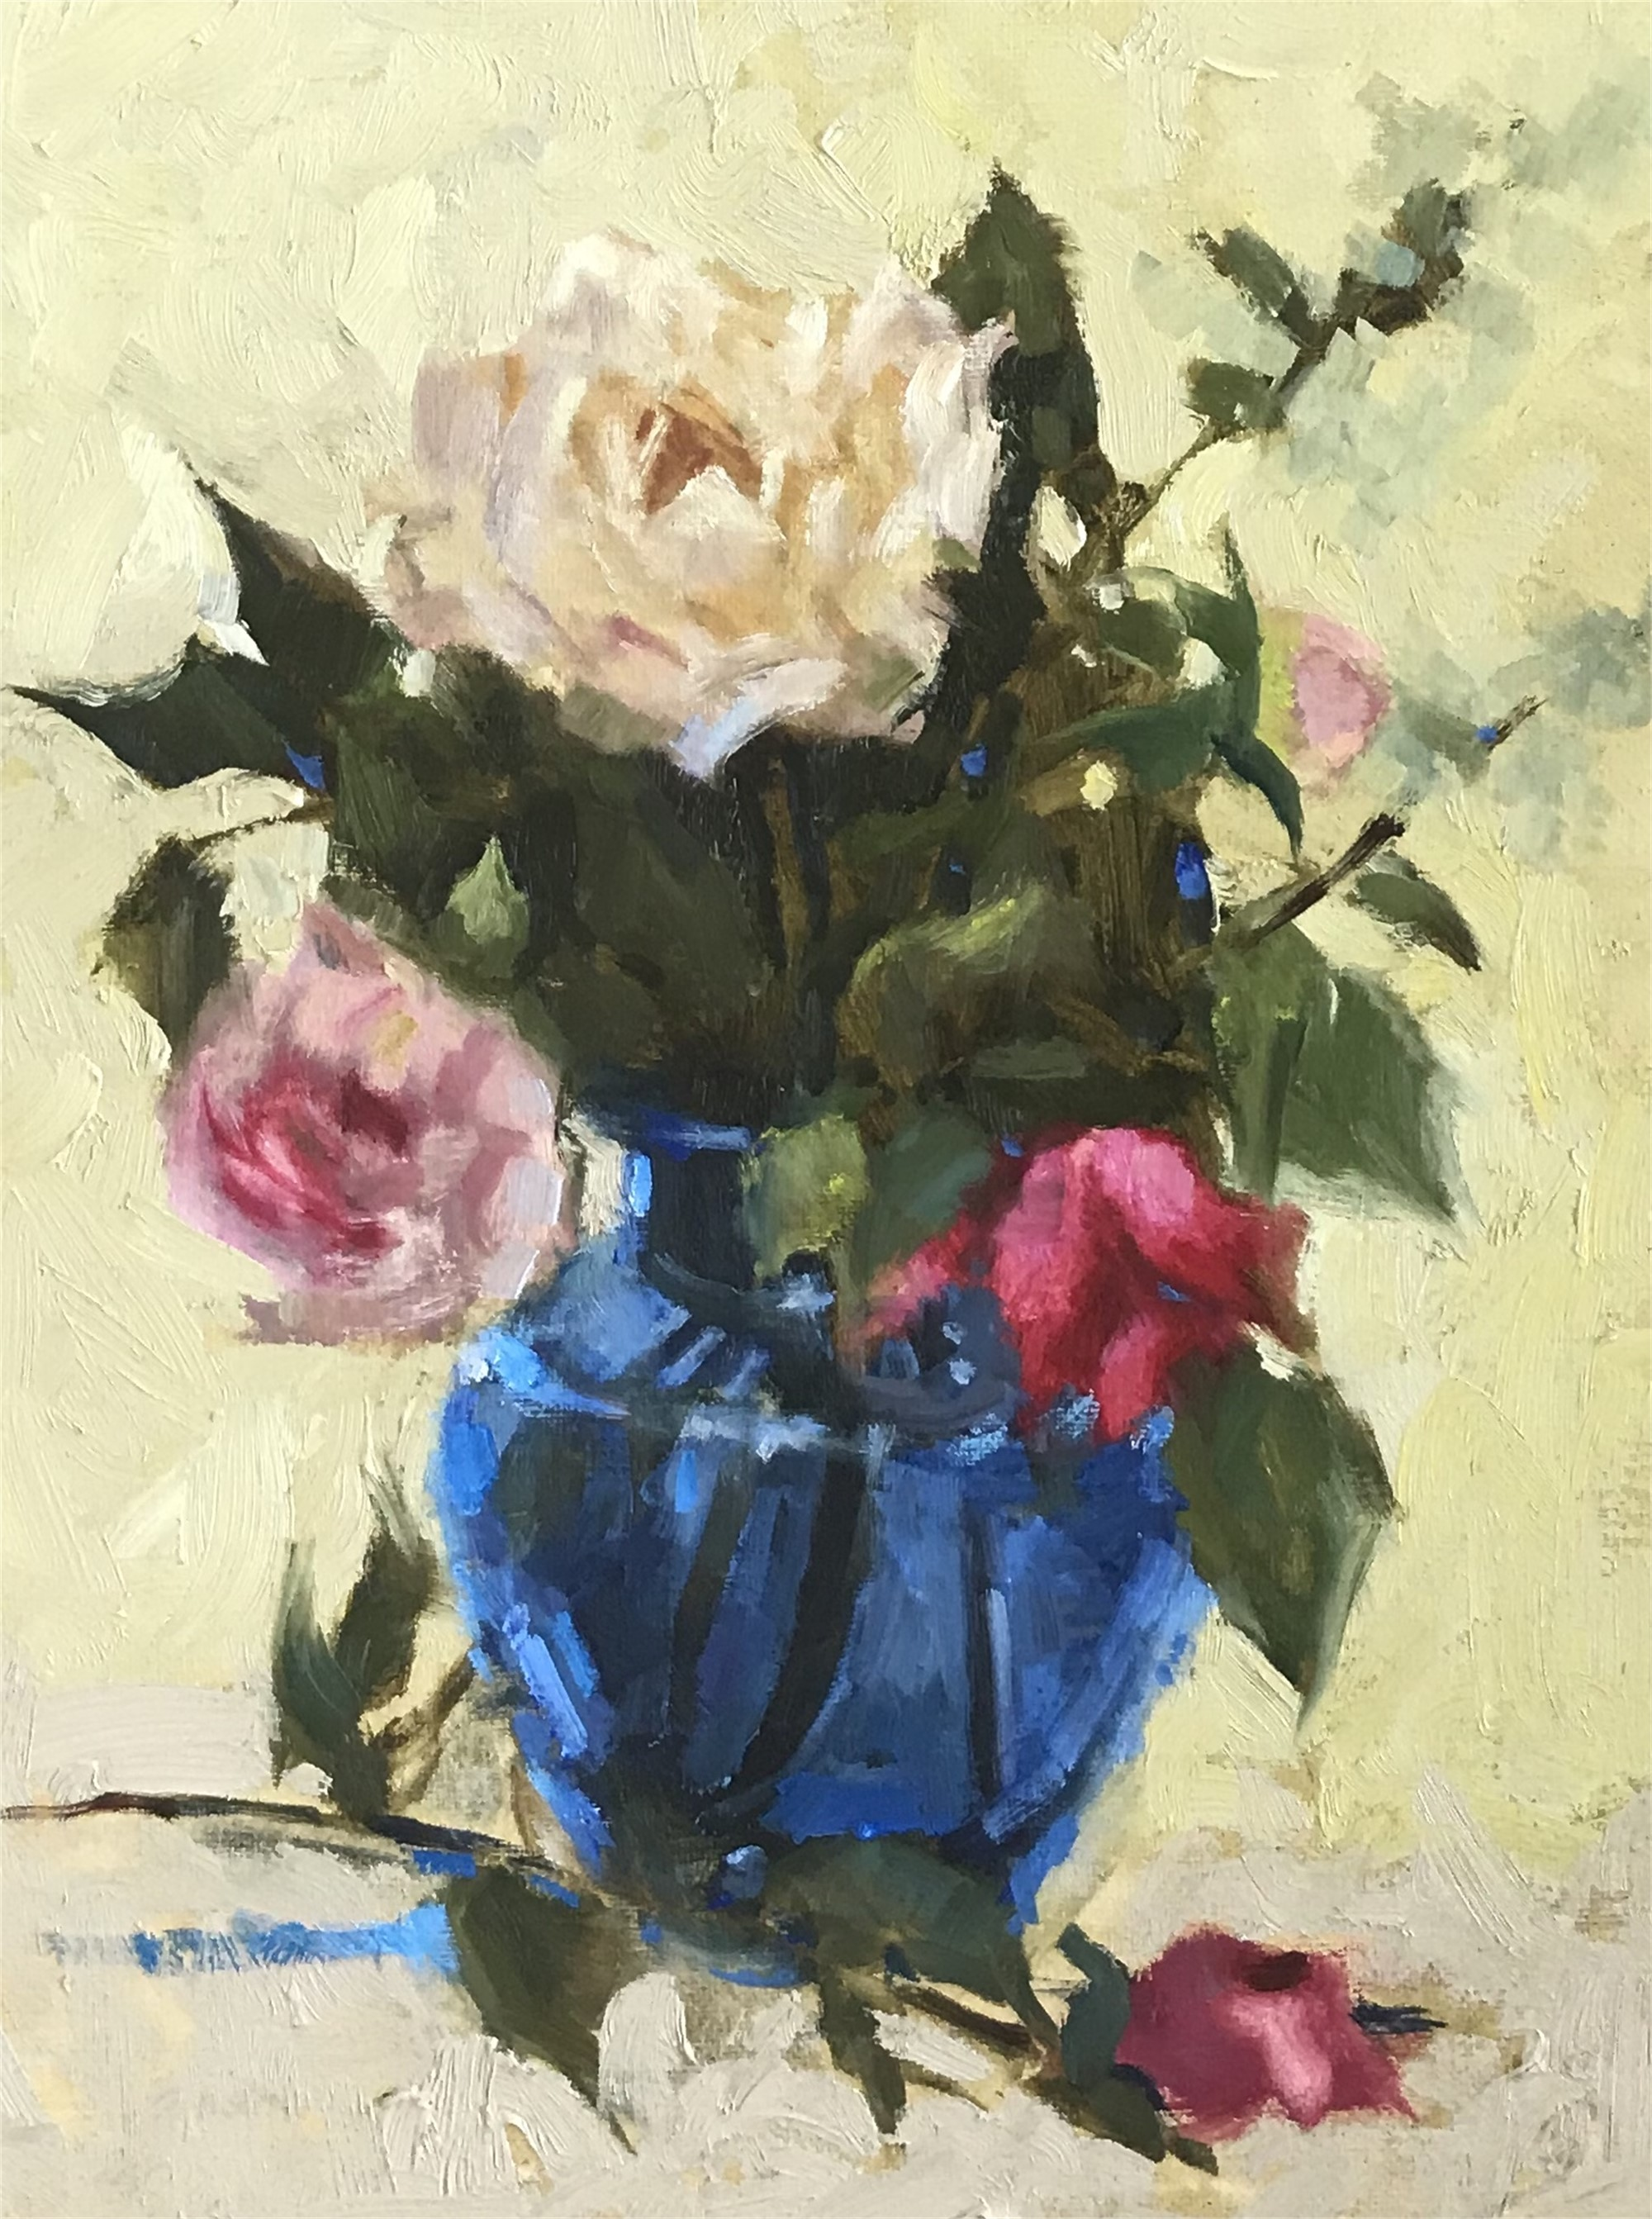 Blue Vase by Laurie Meyer